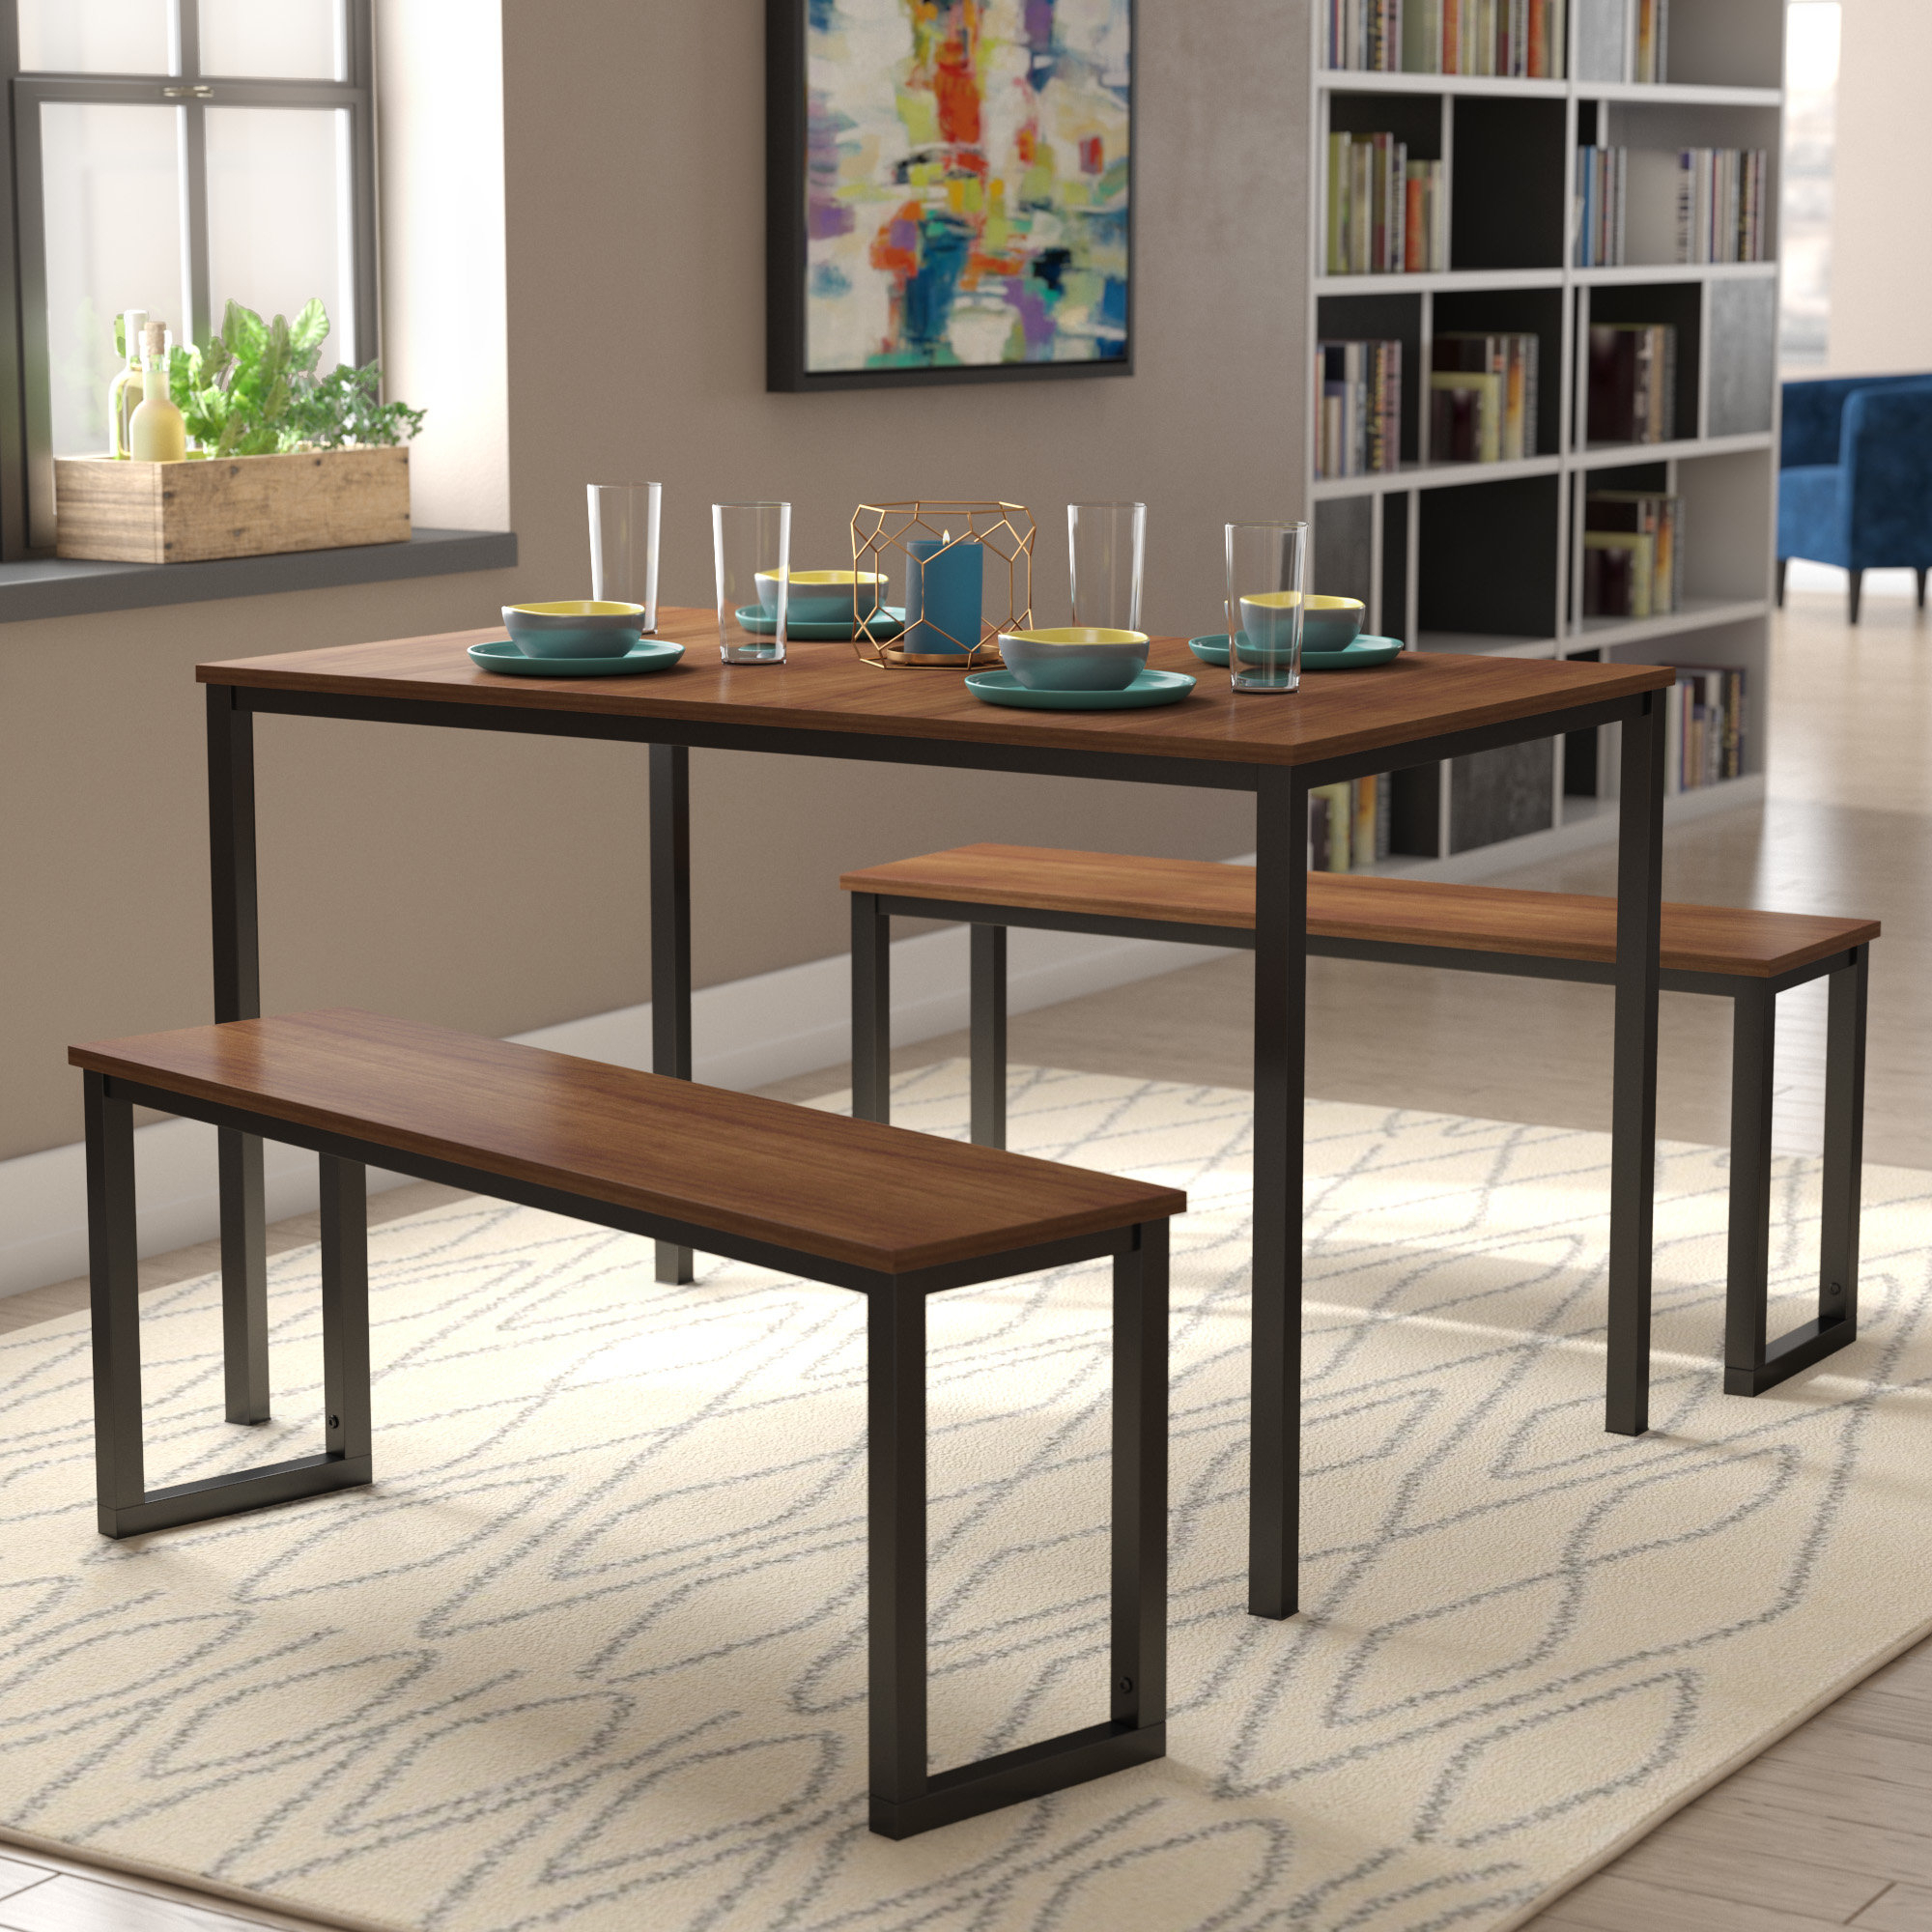 3 Piece Dining Sets Regarding Latest Modern Rustic Interiors Frida 3 Piece Dining Table Set & Reviews (View 6 of 25)